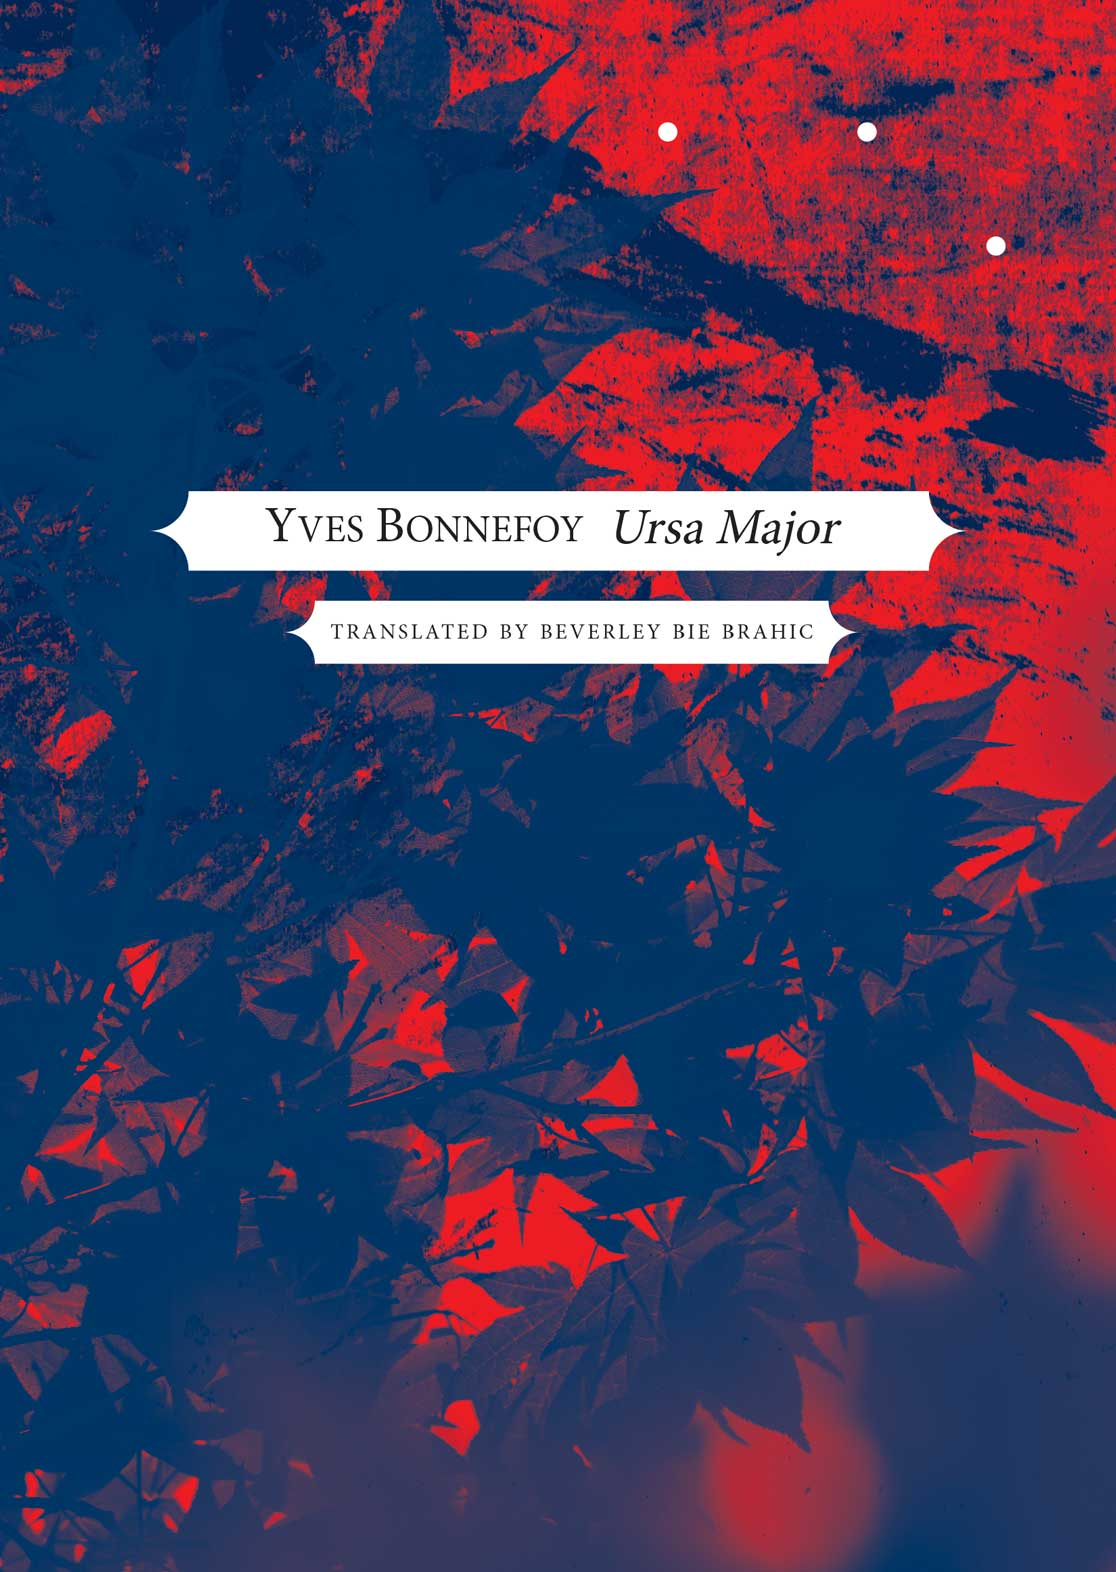 Ursa Major by Yves Bonnefoy, tranlated from the French by Beverly Bie Brahic